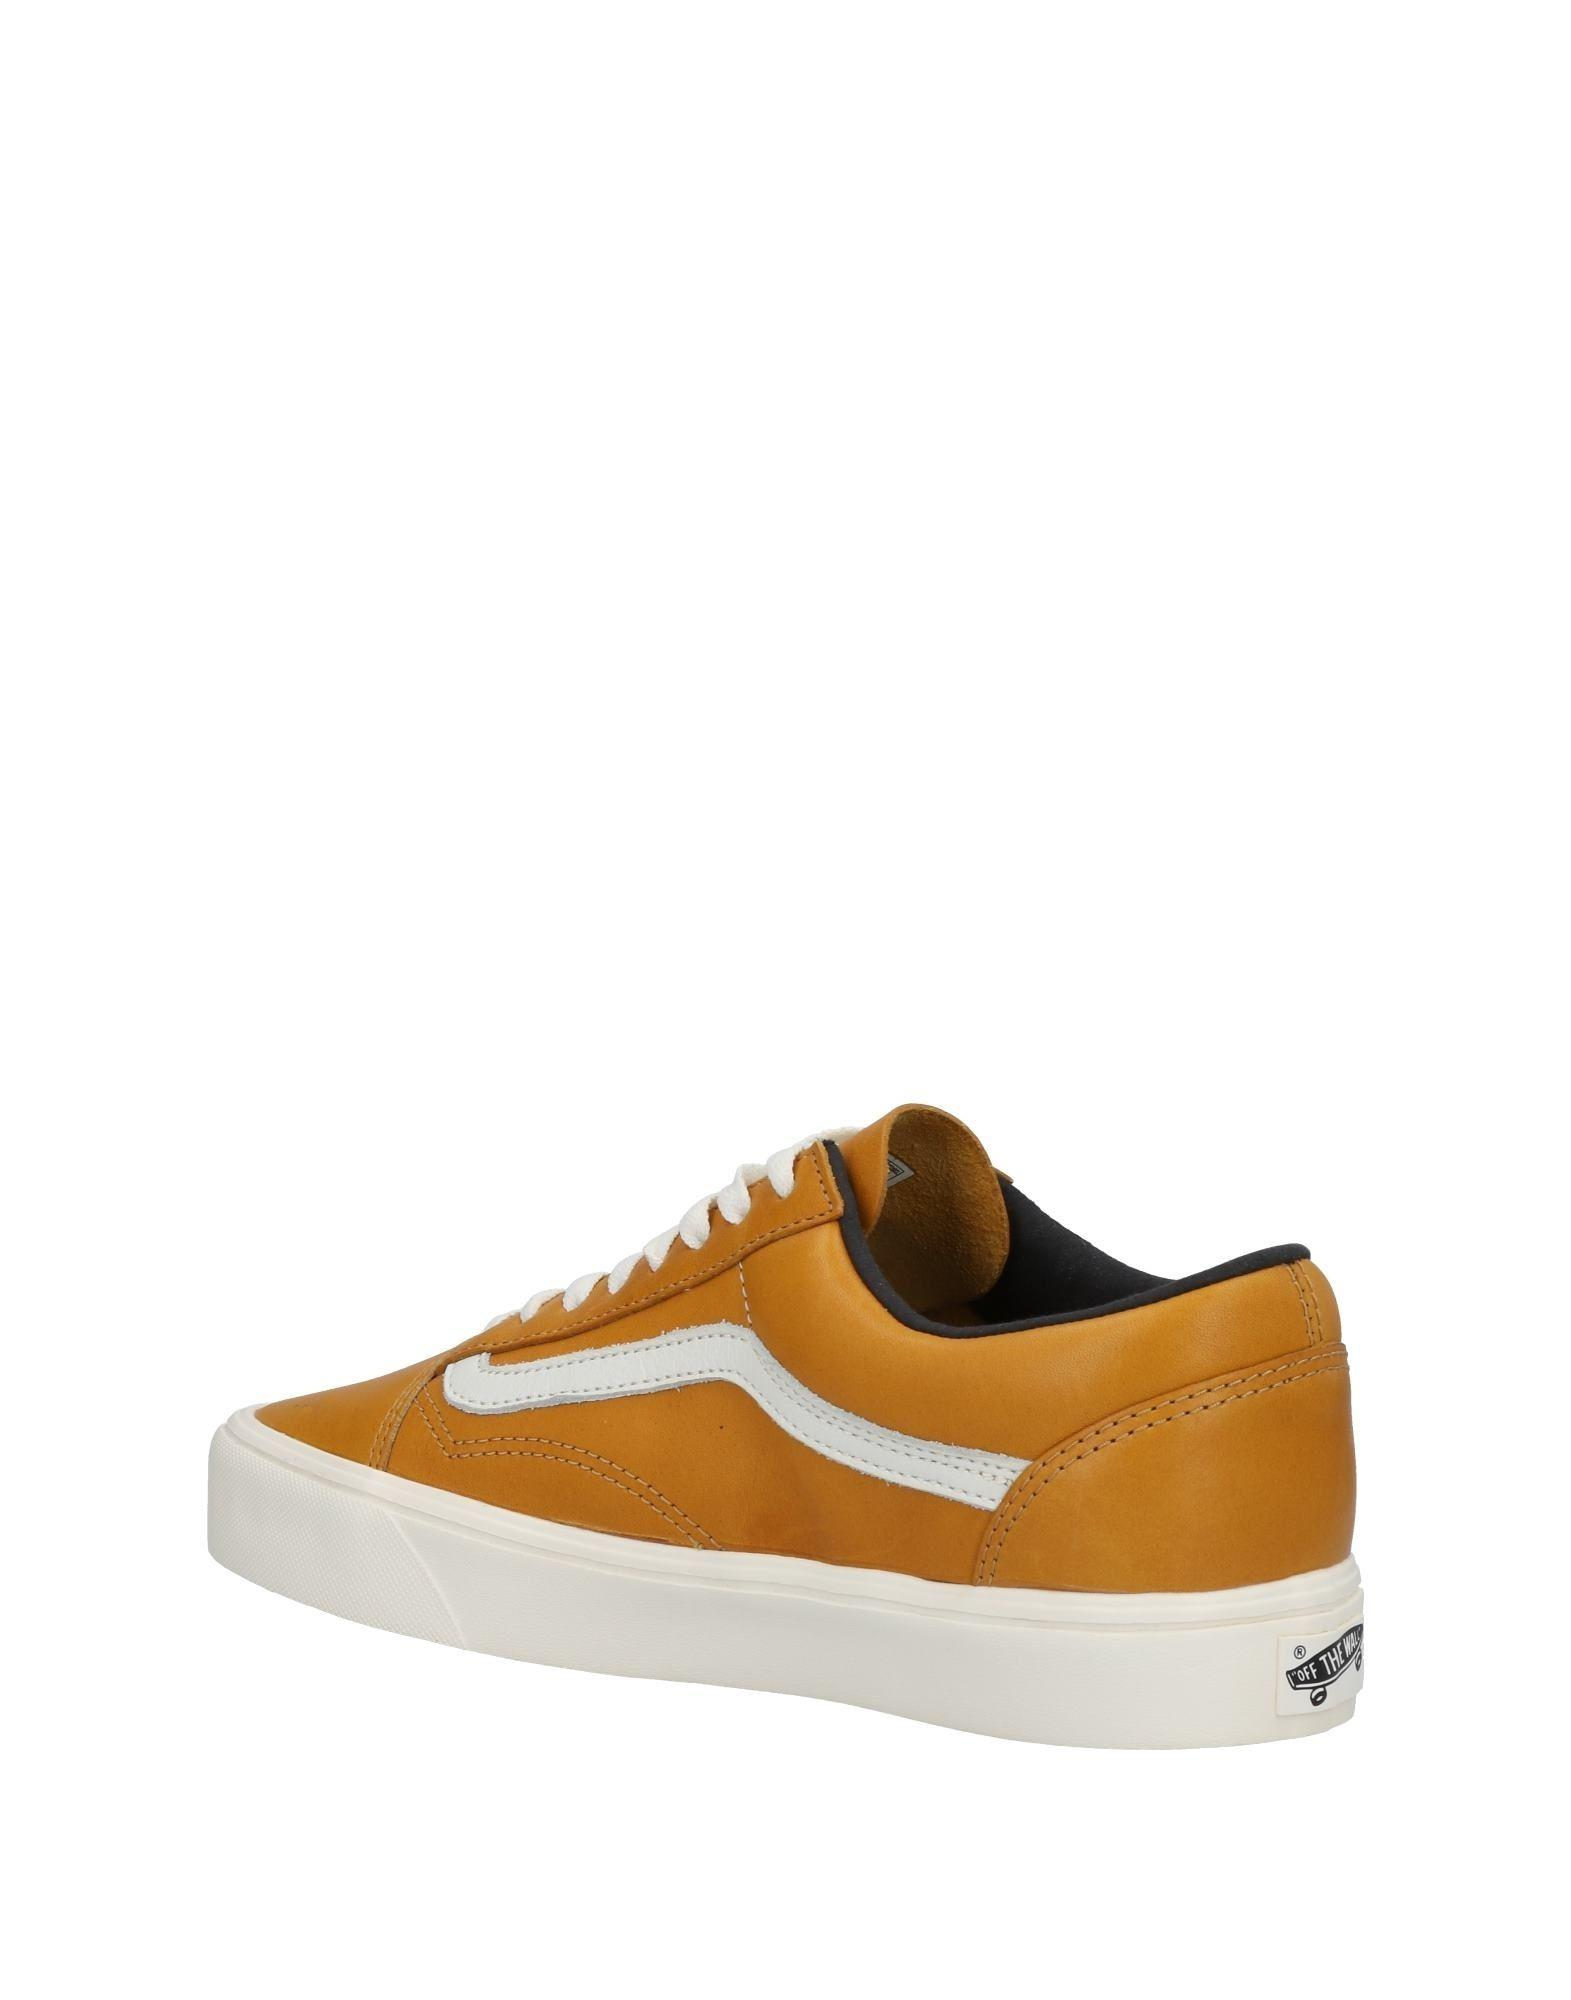 b854a90222fbec Vans Low-tops   Sneakers in Orange for Men - Lyst